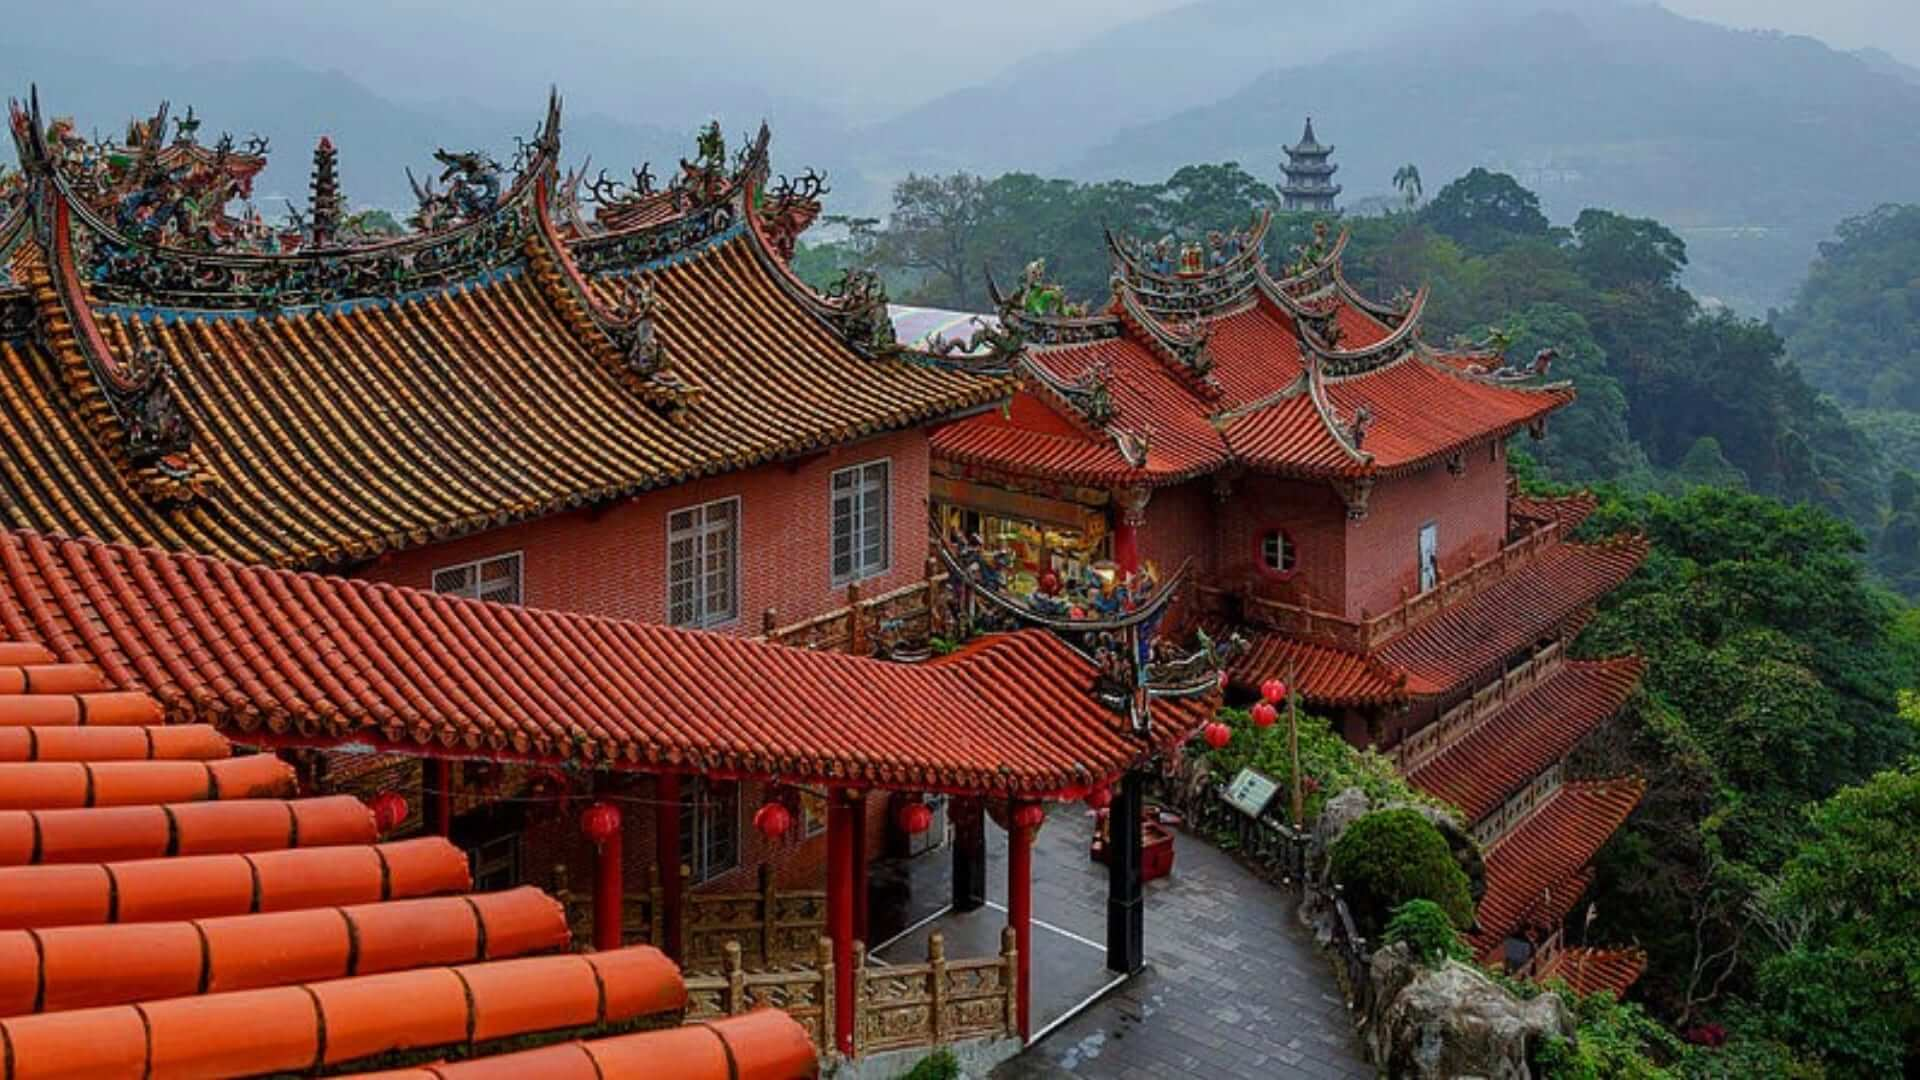 A red temple on a hill full of green trees in Taiwan.